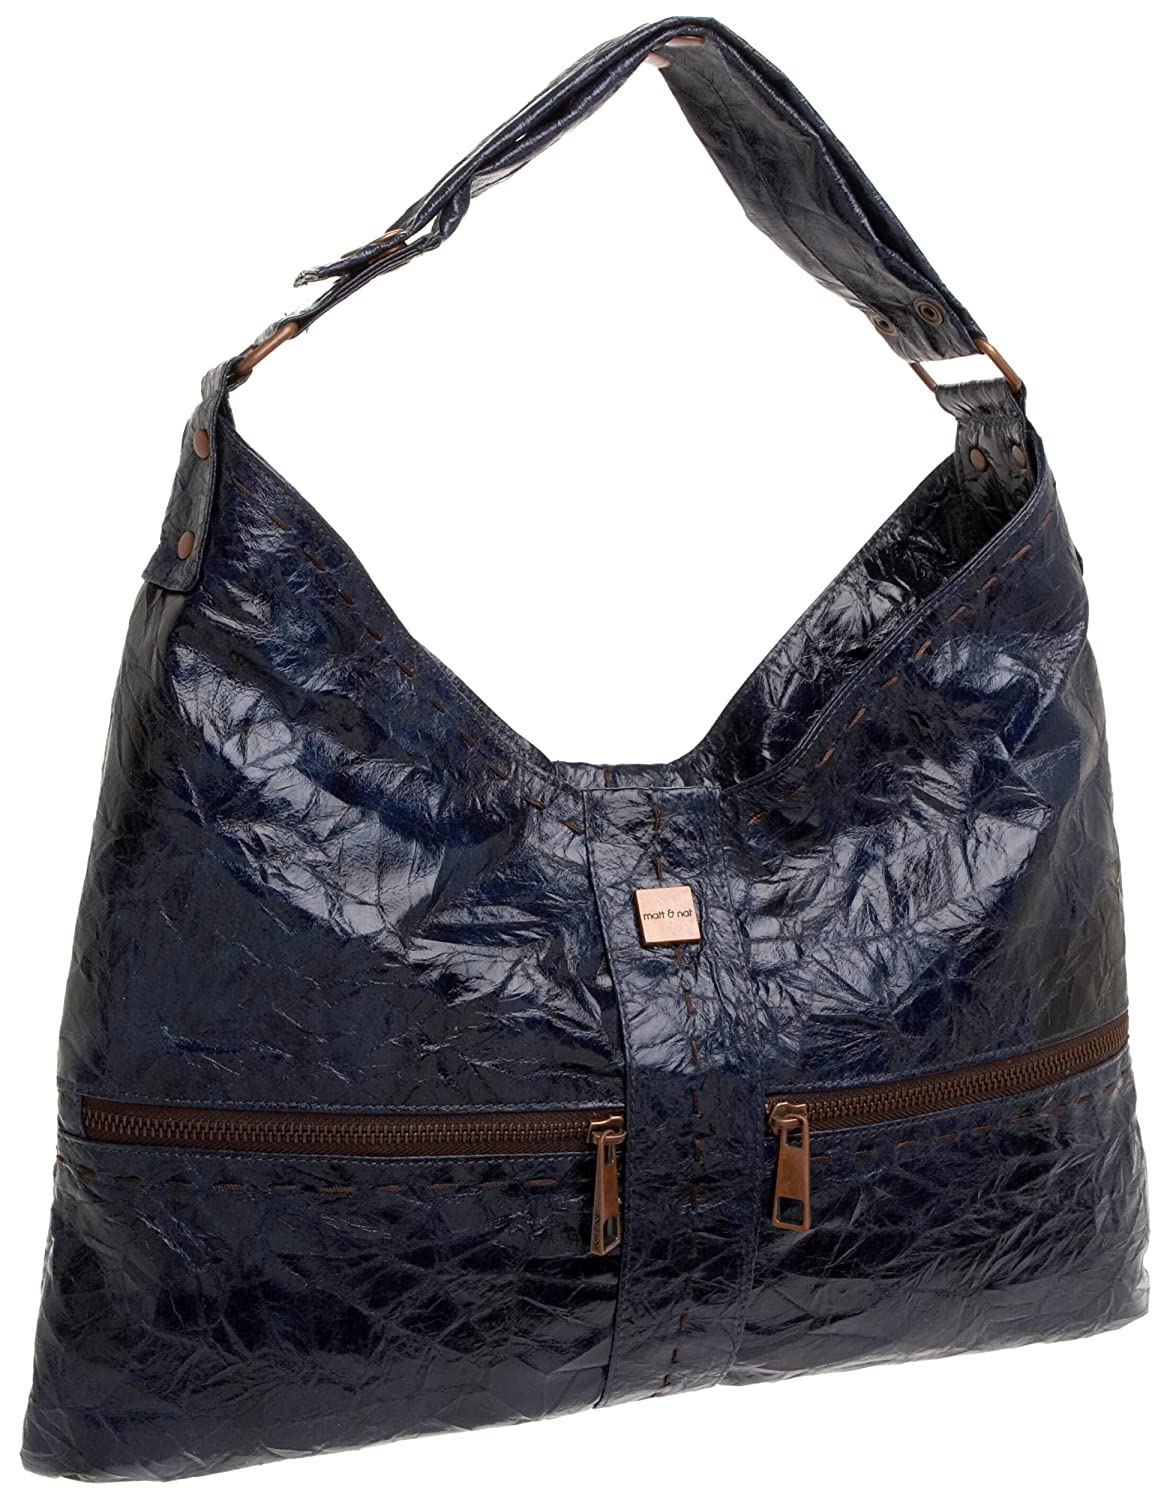 Endless.com: Matt & Nat Vicious Shoulder Bag: Oversized Bags - Free Overnight Shipping & Return Shipping from endless.com